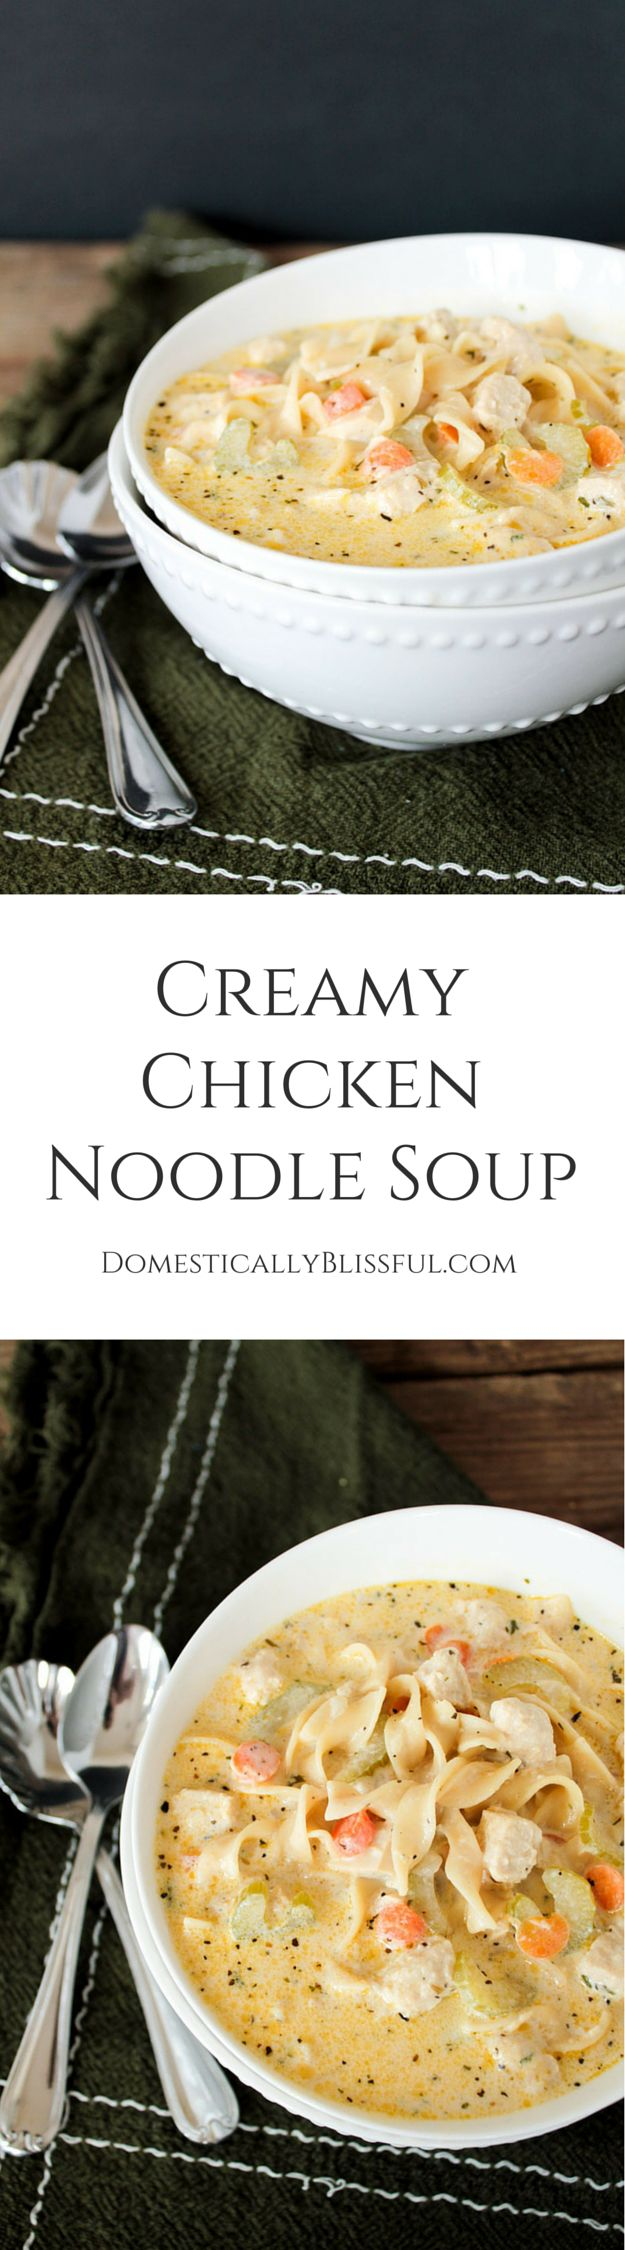 Creamy Chicken Noodle Soup for vegetarians by Domestically Blissful